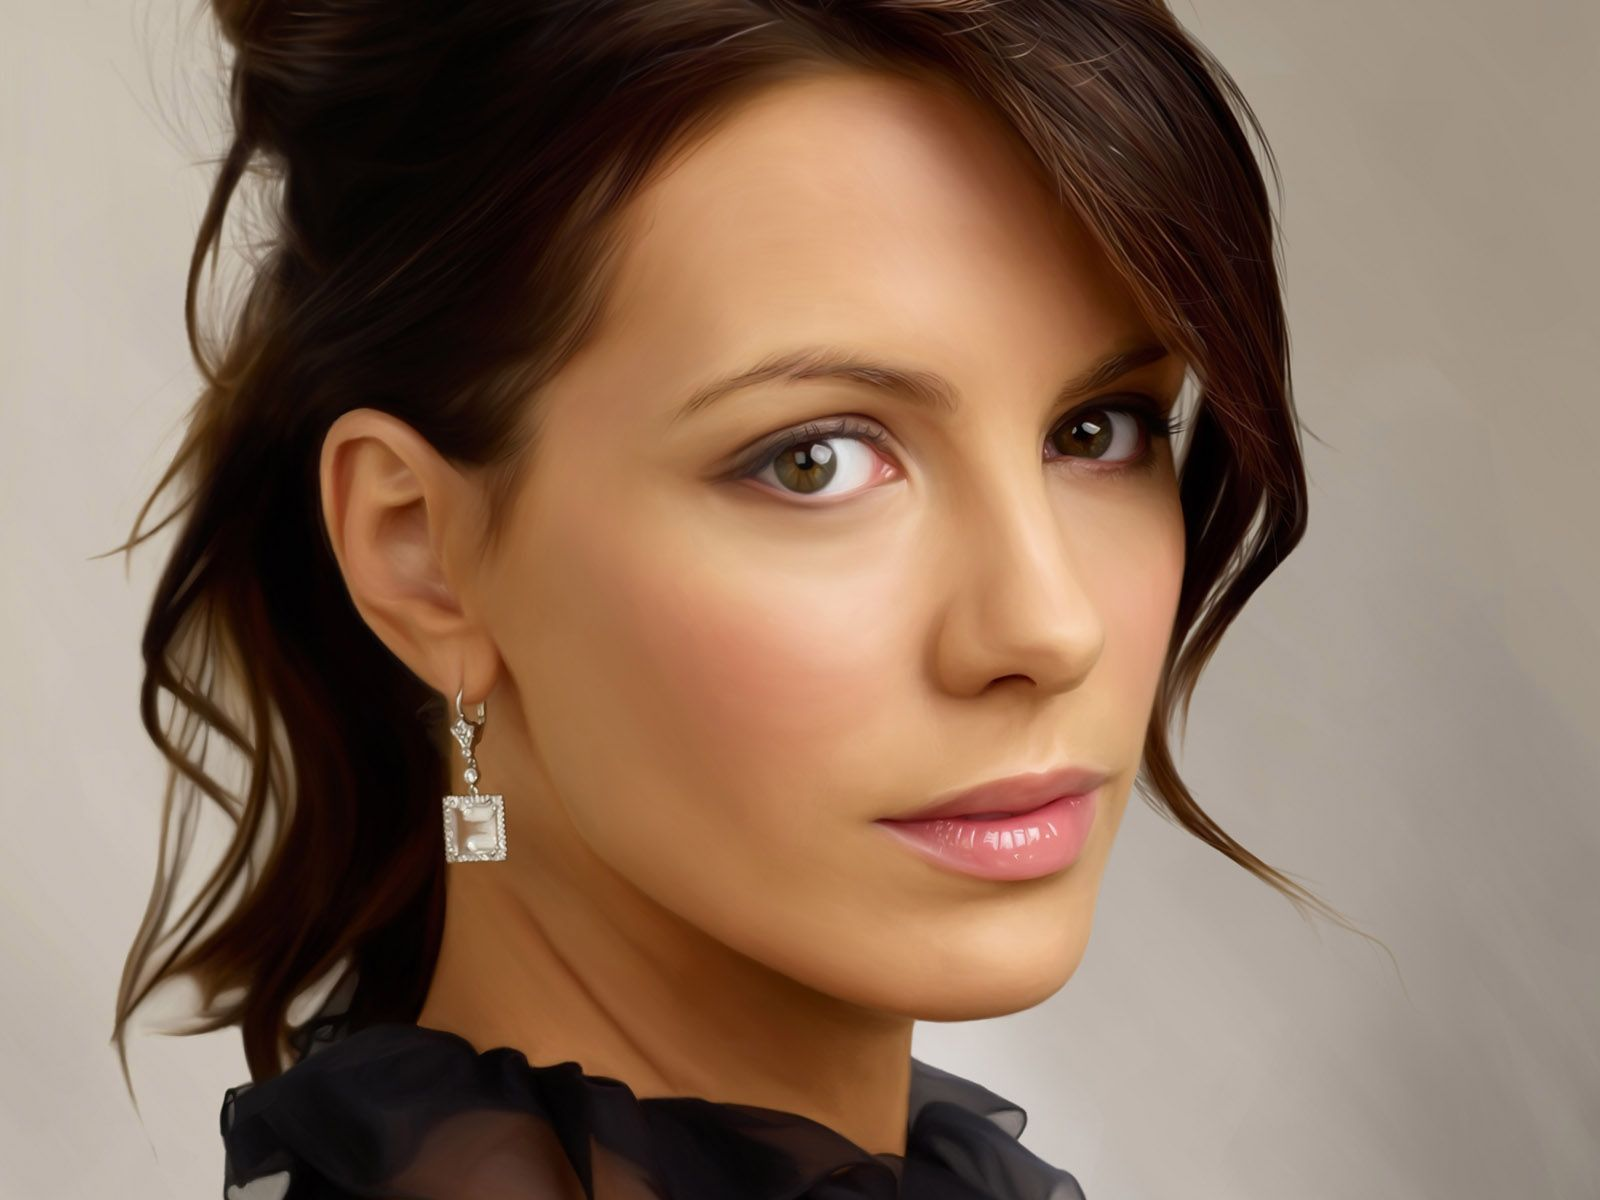 kate beckinsale hd wallpapers kate beckinsale high quality and